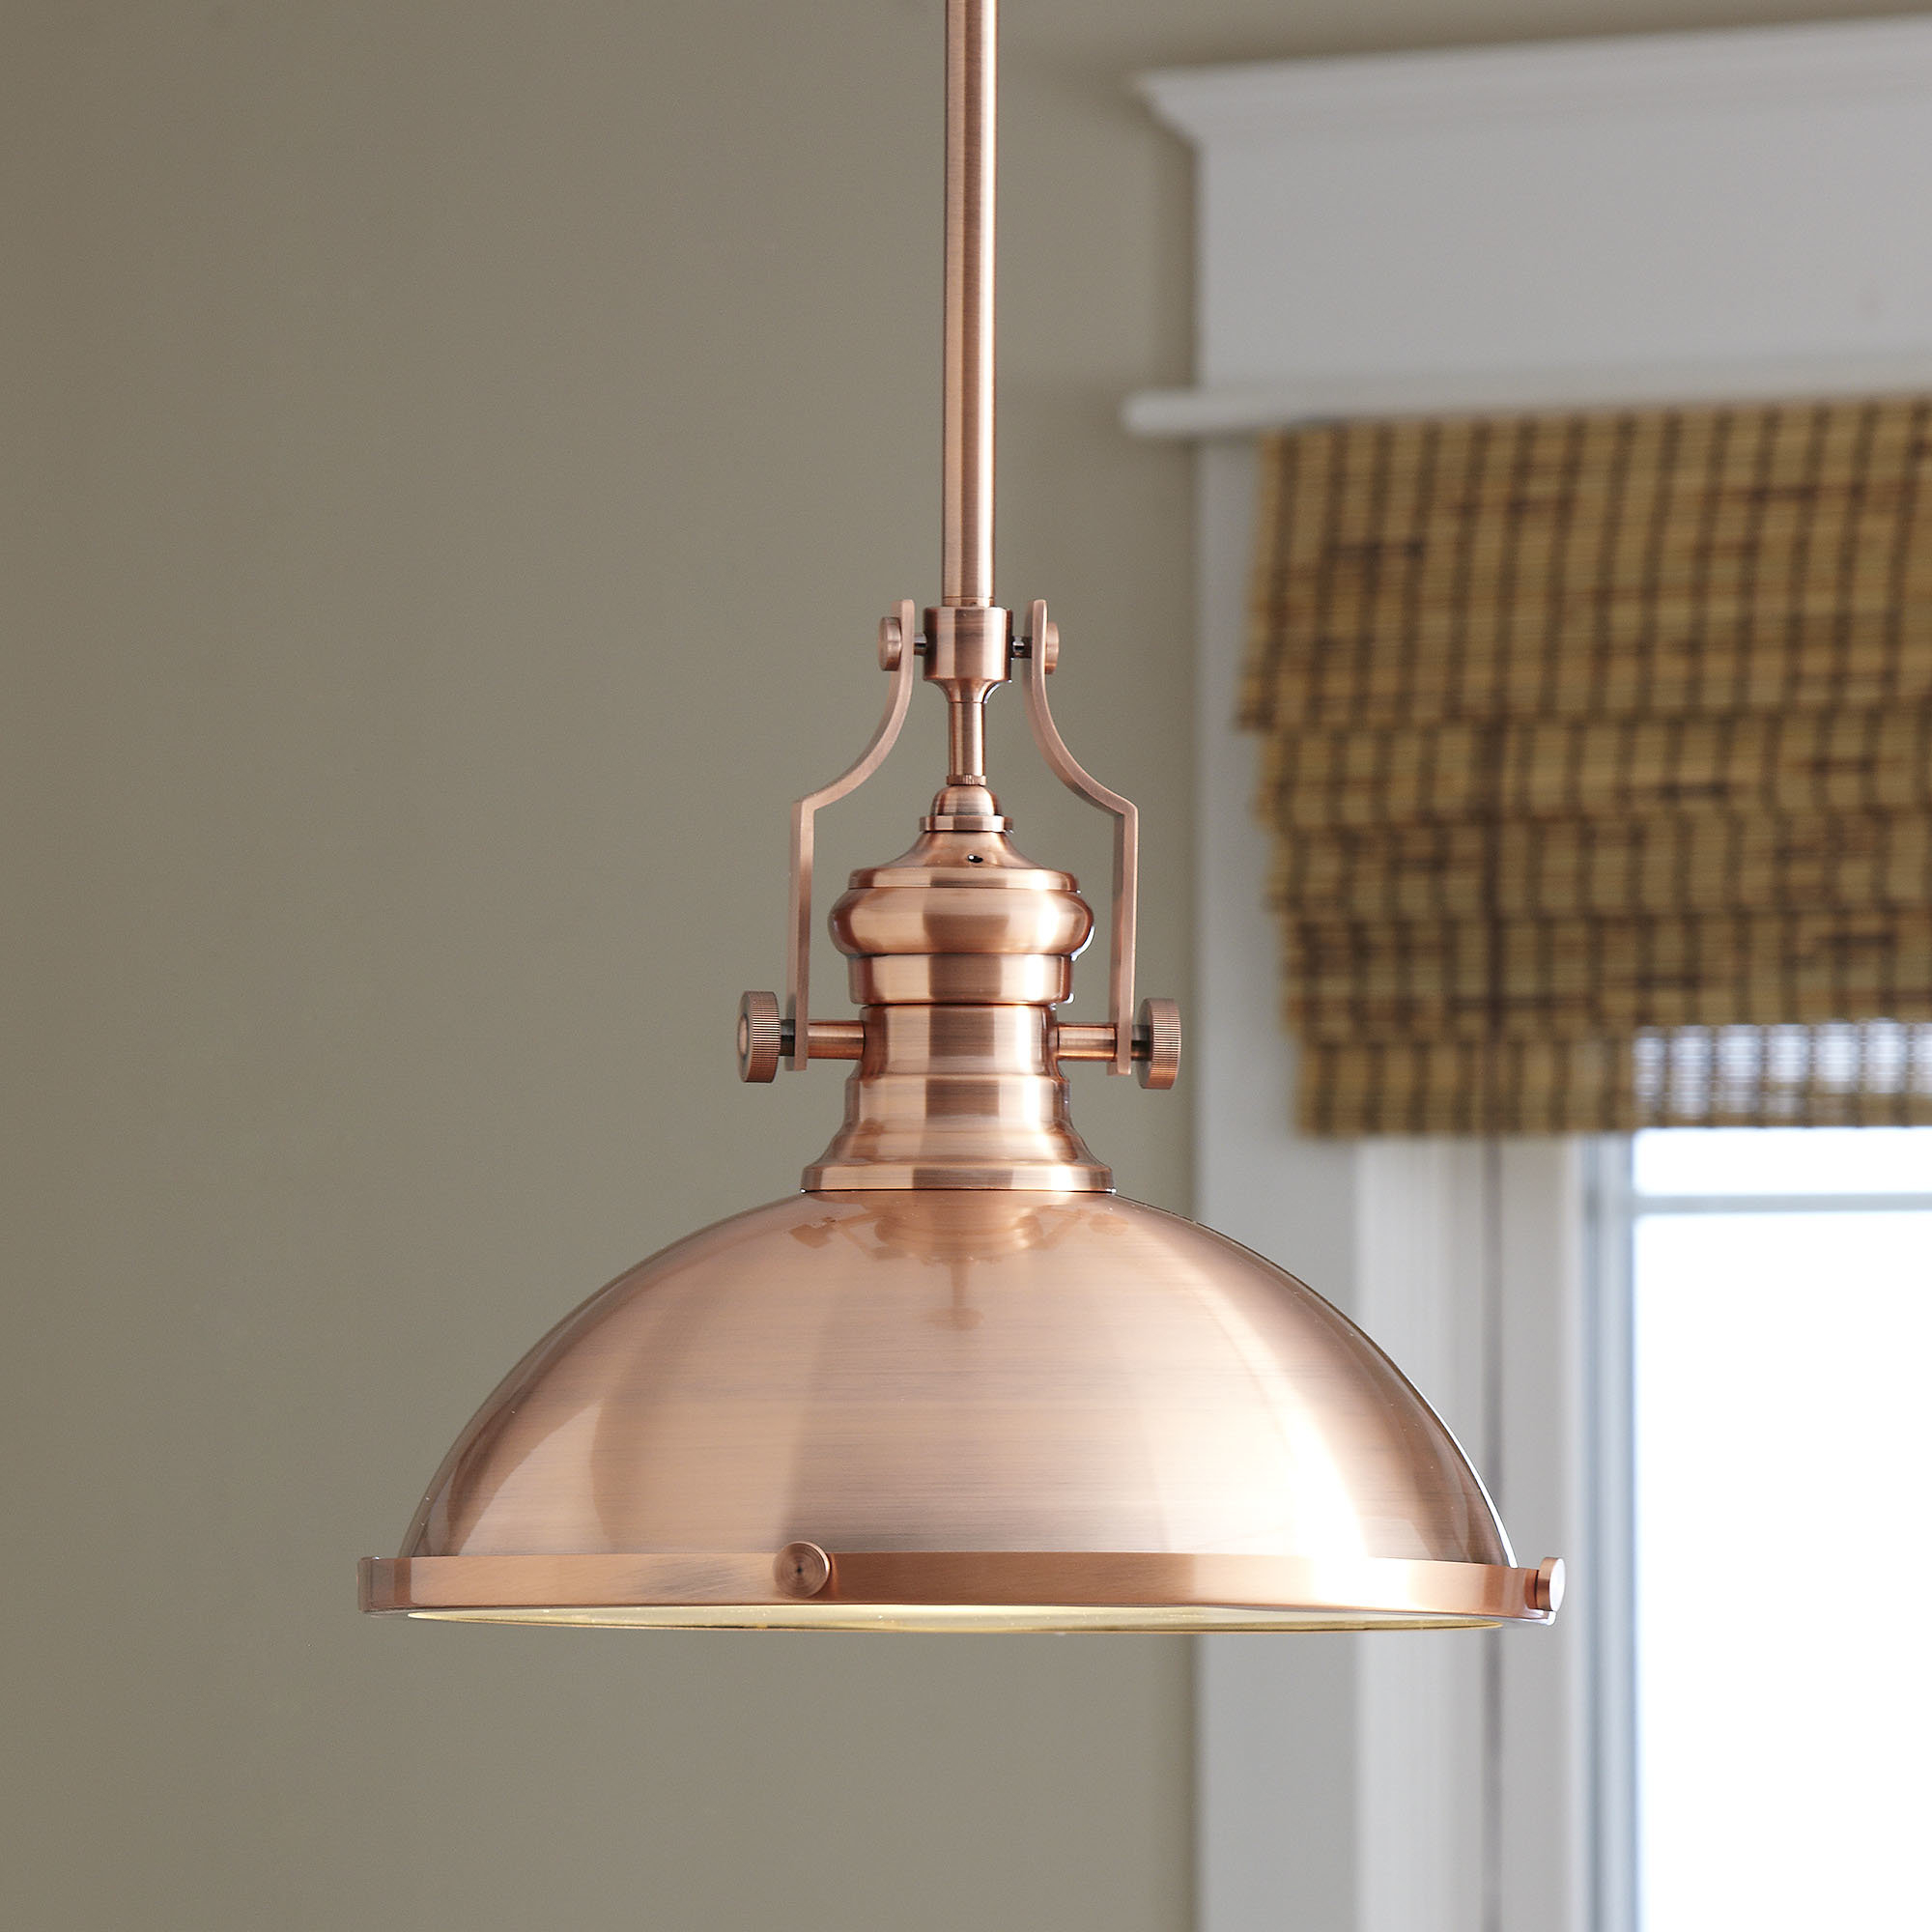 Priston 1 Light Single Dome Pendants For Latest 1 Light Single Dome Pendant (Gallery 12 of 20)